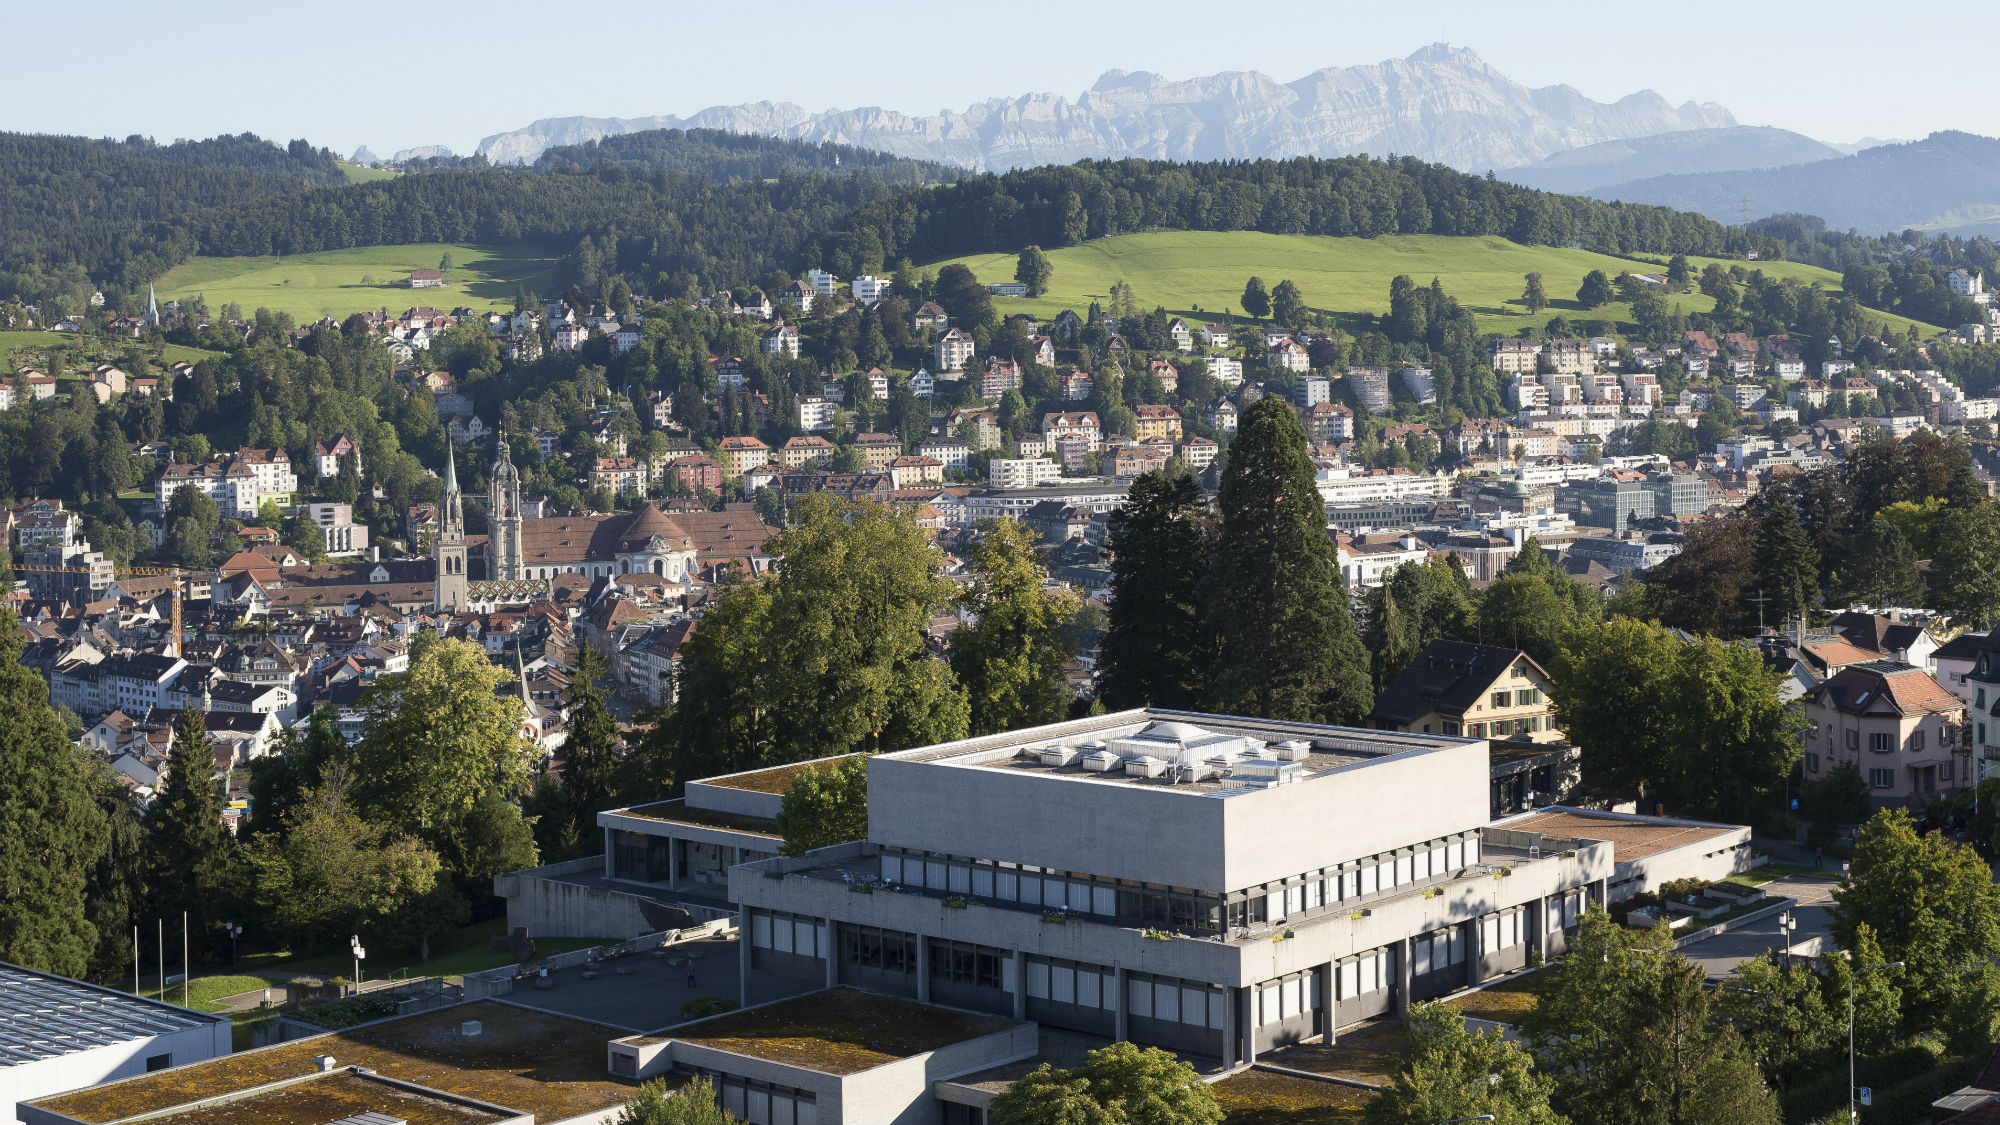 Aerial photograph with the main focus on the Main Building of the University of St.Gallen (HSG)